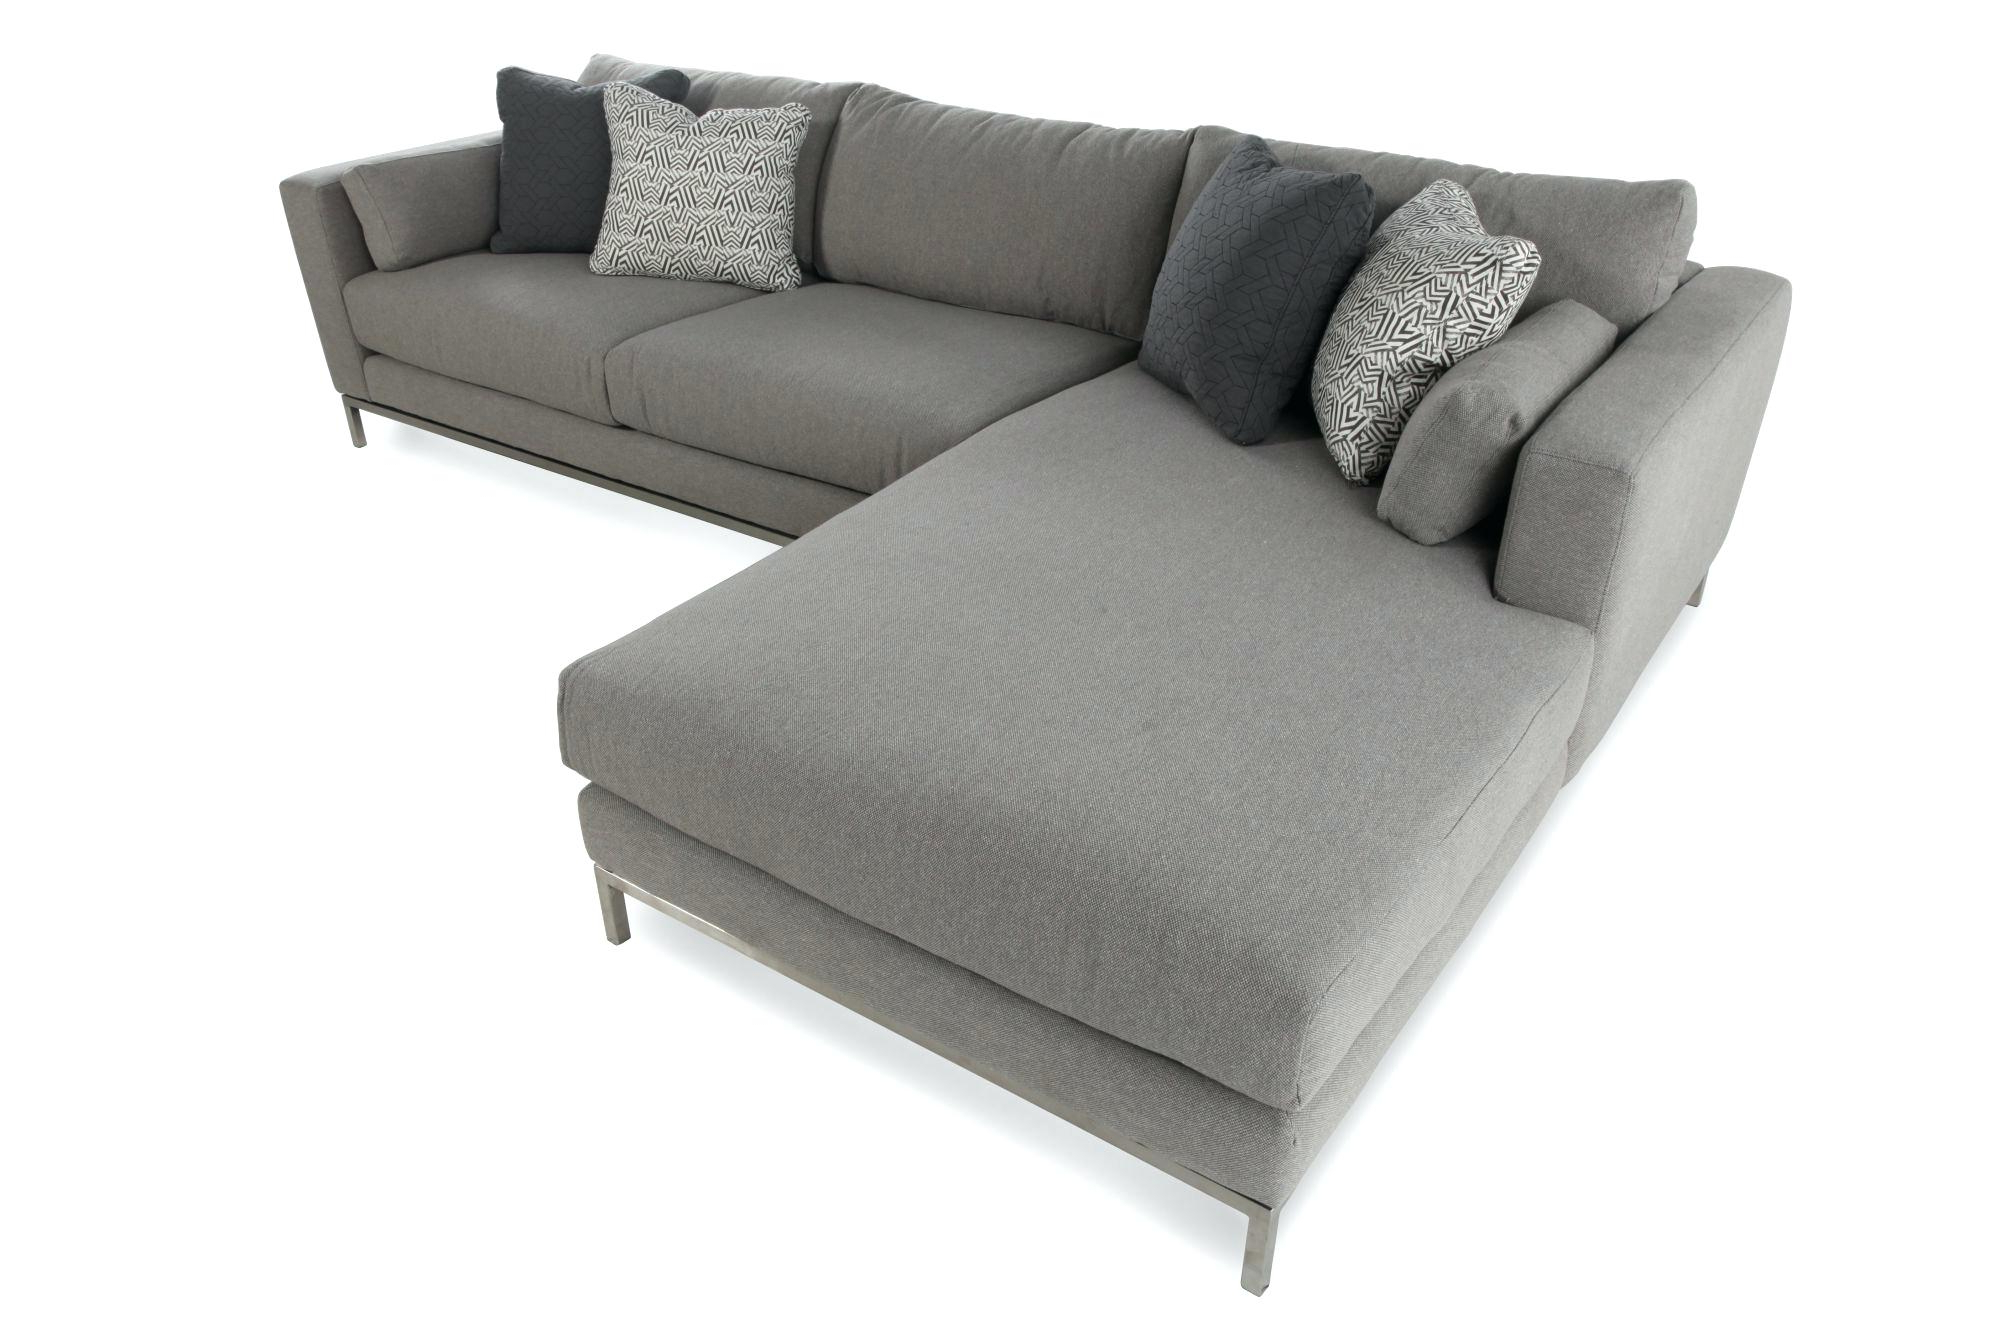 2 Piece Sectional Sofa Canada (View 13 of 20)